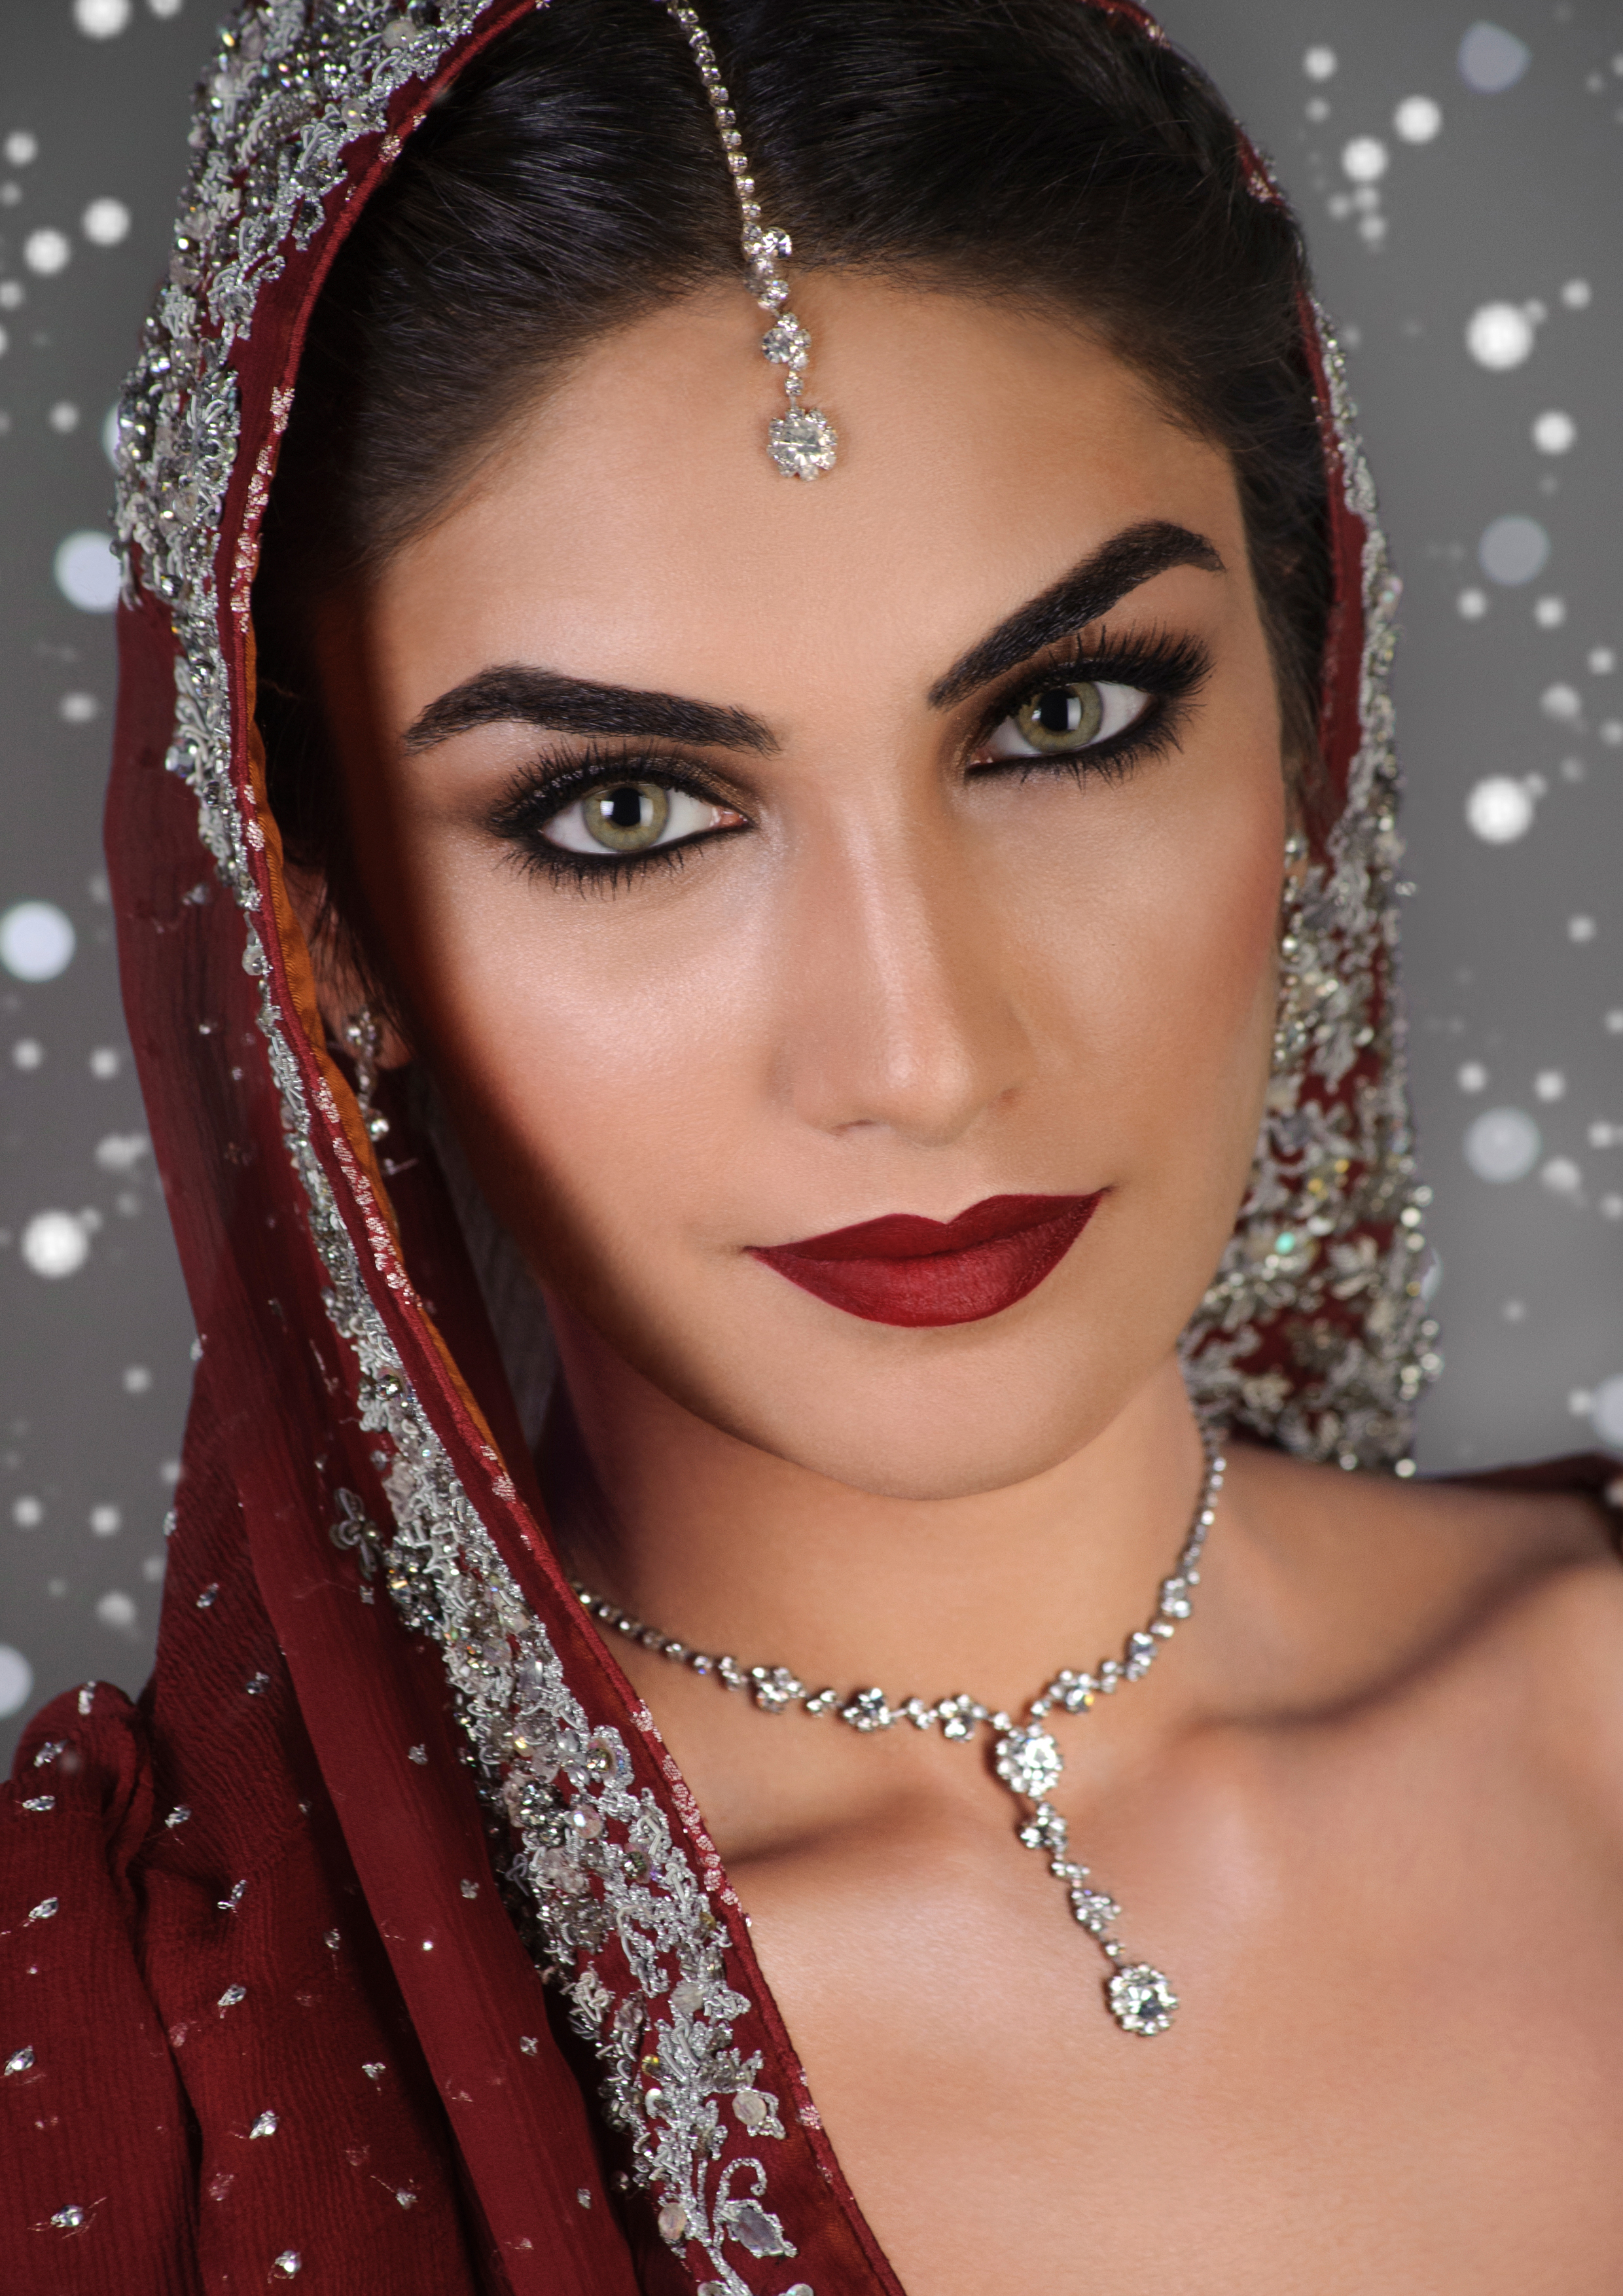 """""""The new Classic""""  Reimagining the tried and true Baraat red lipstick, but pairing it with cool skin and silvery eyes makes for an updated spin on this classic look"""